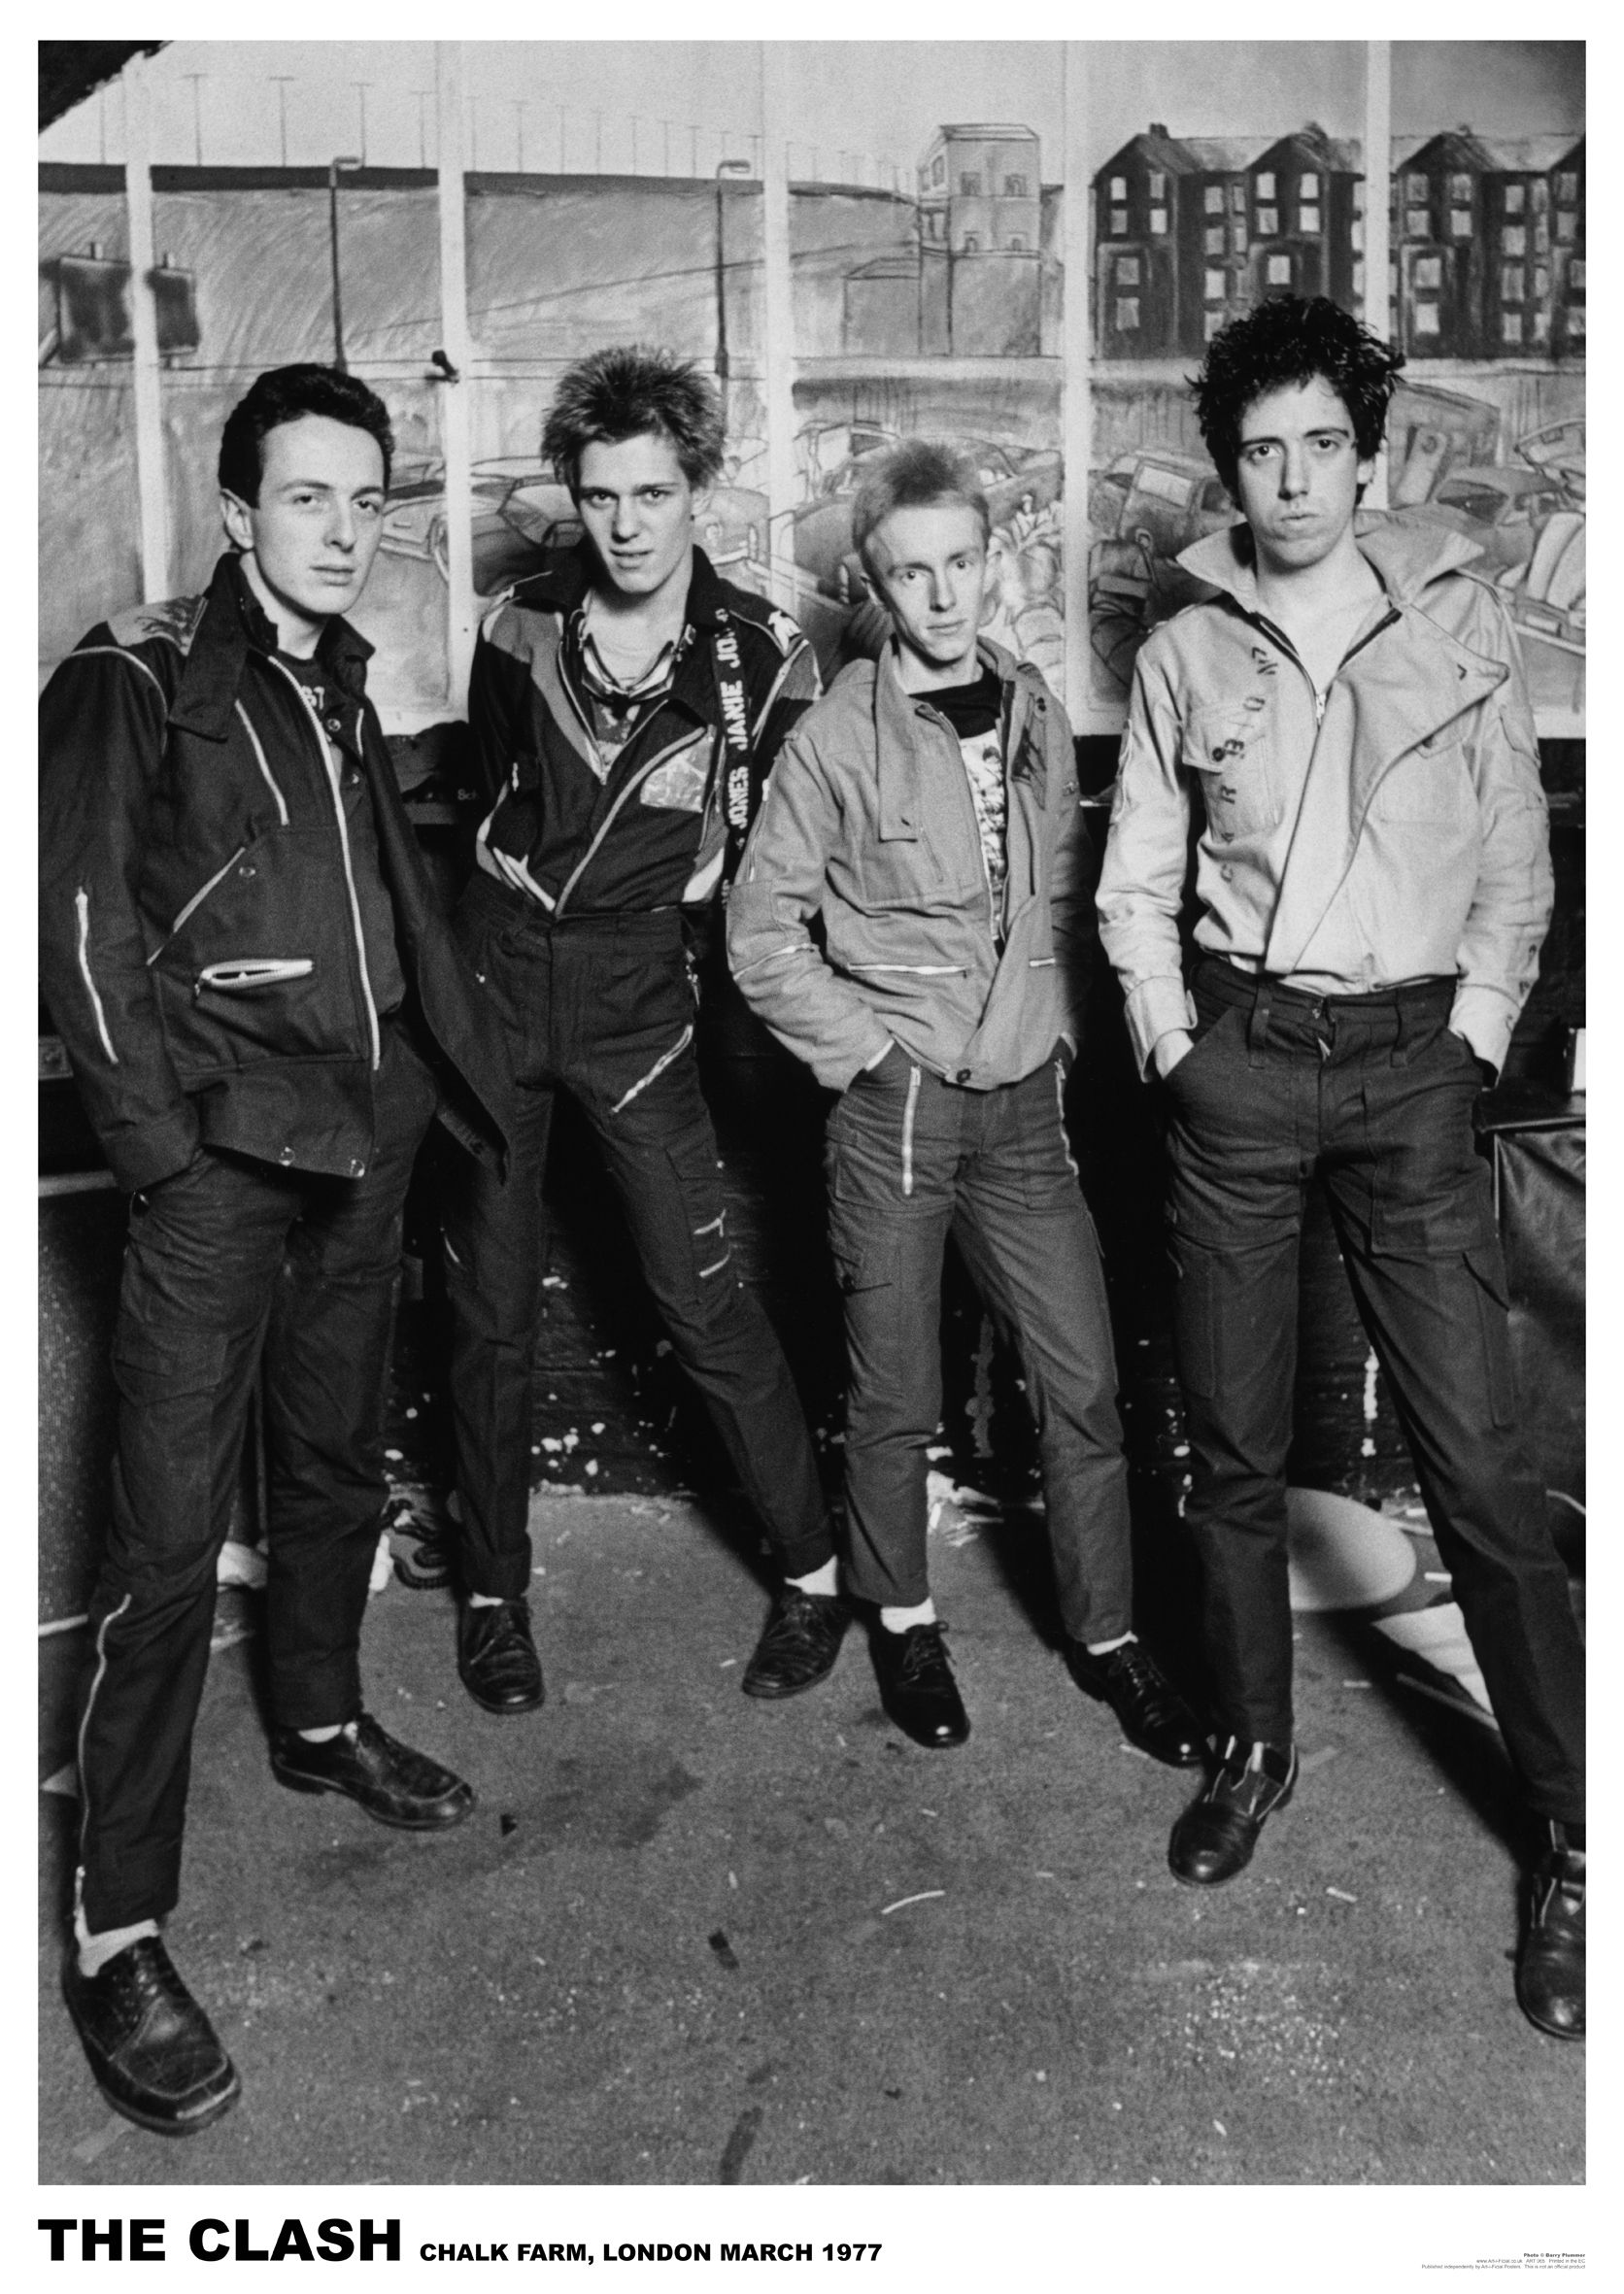 The Clash - Poster | Punk Posters | Pinterest | Joe strummer and ...